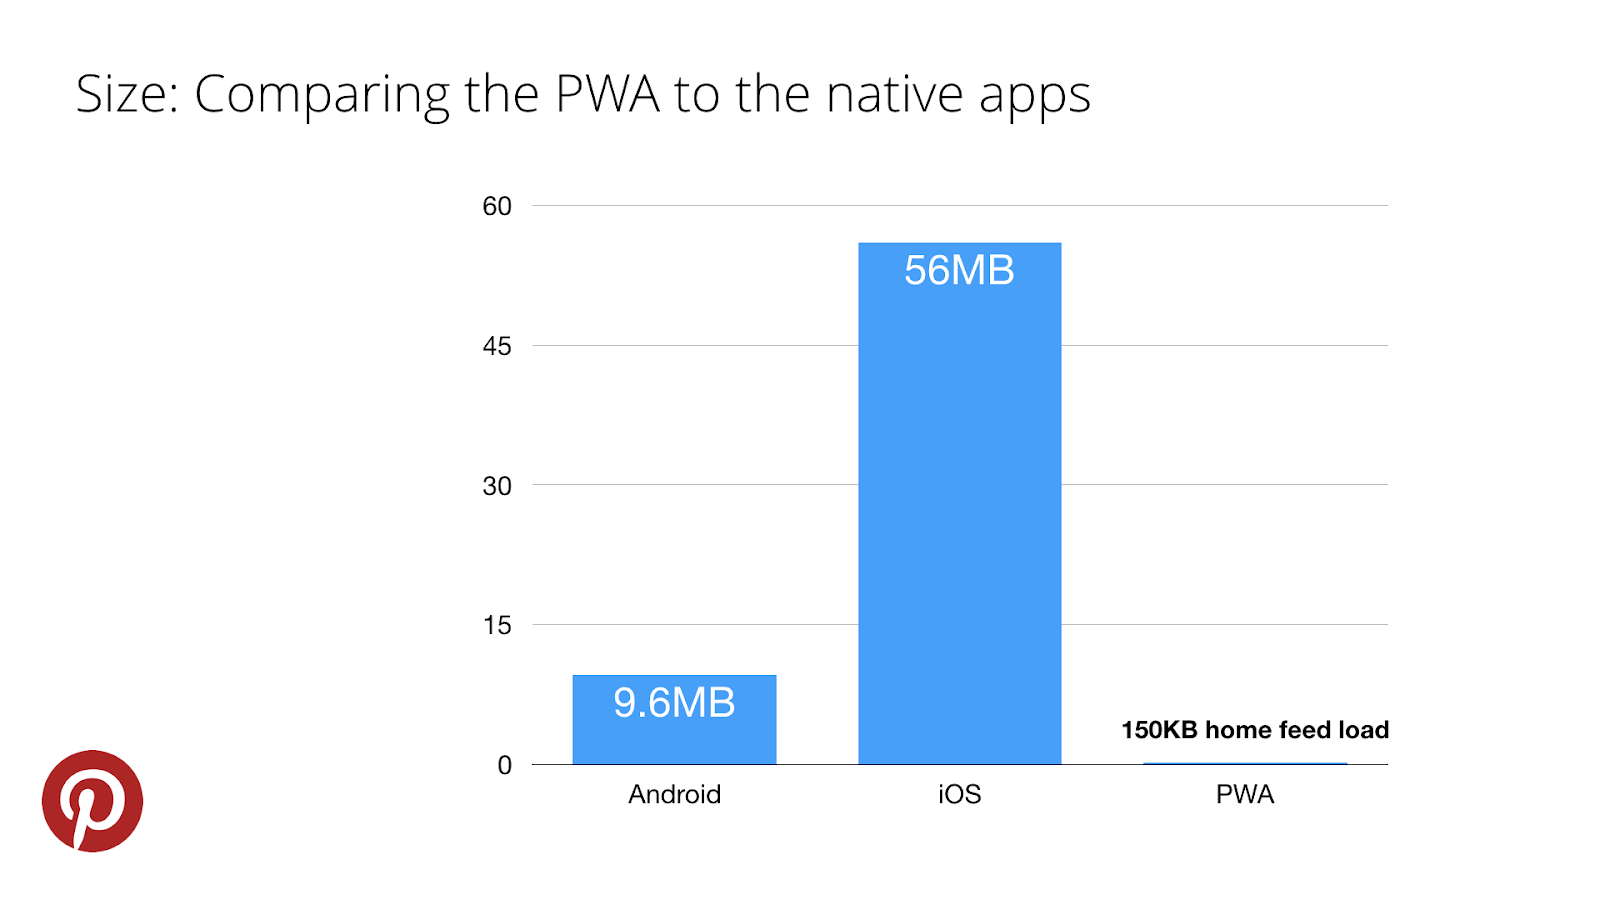 Progressive web apps consume much less space than the native ones.